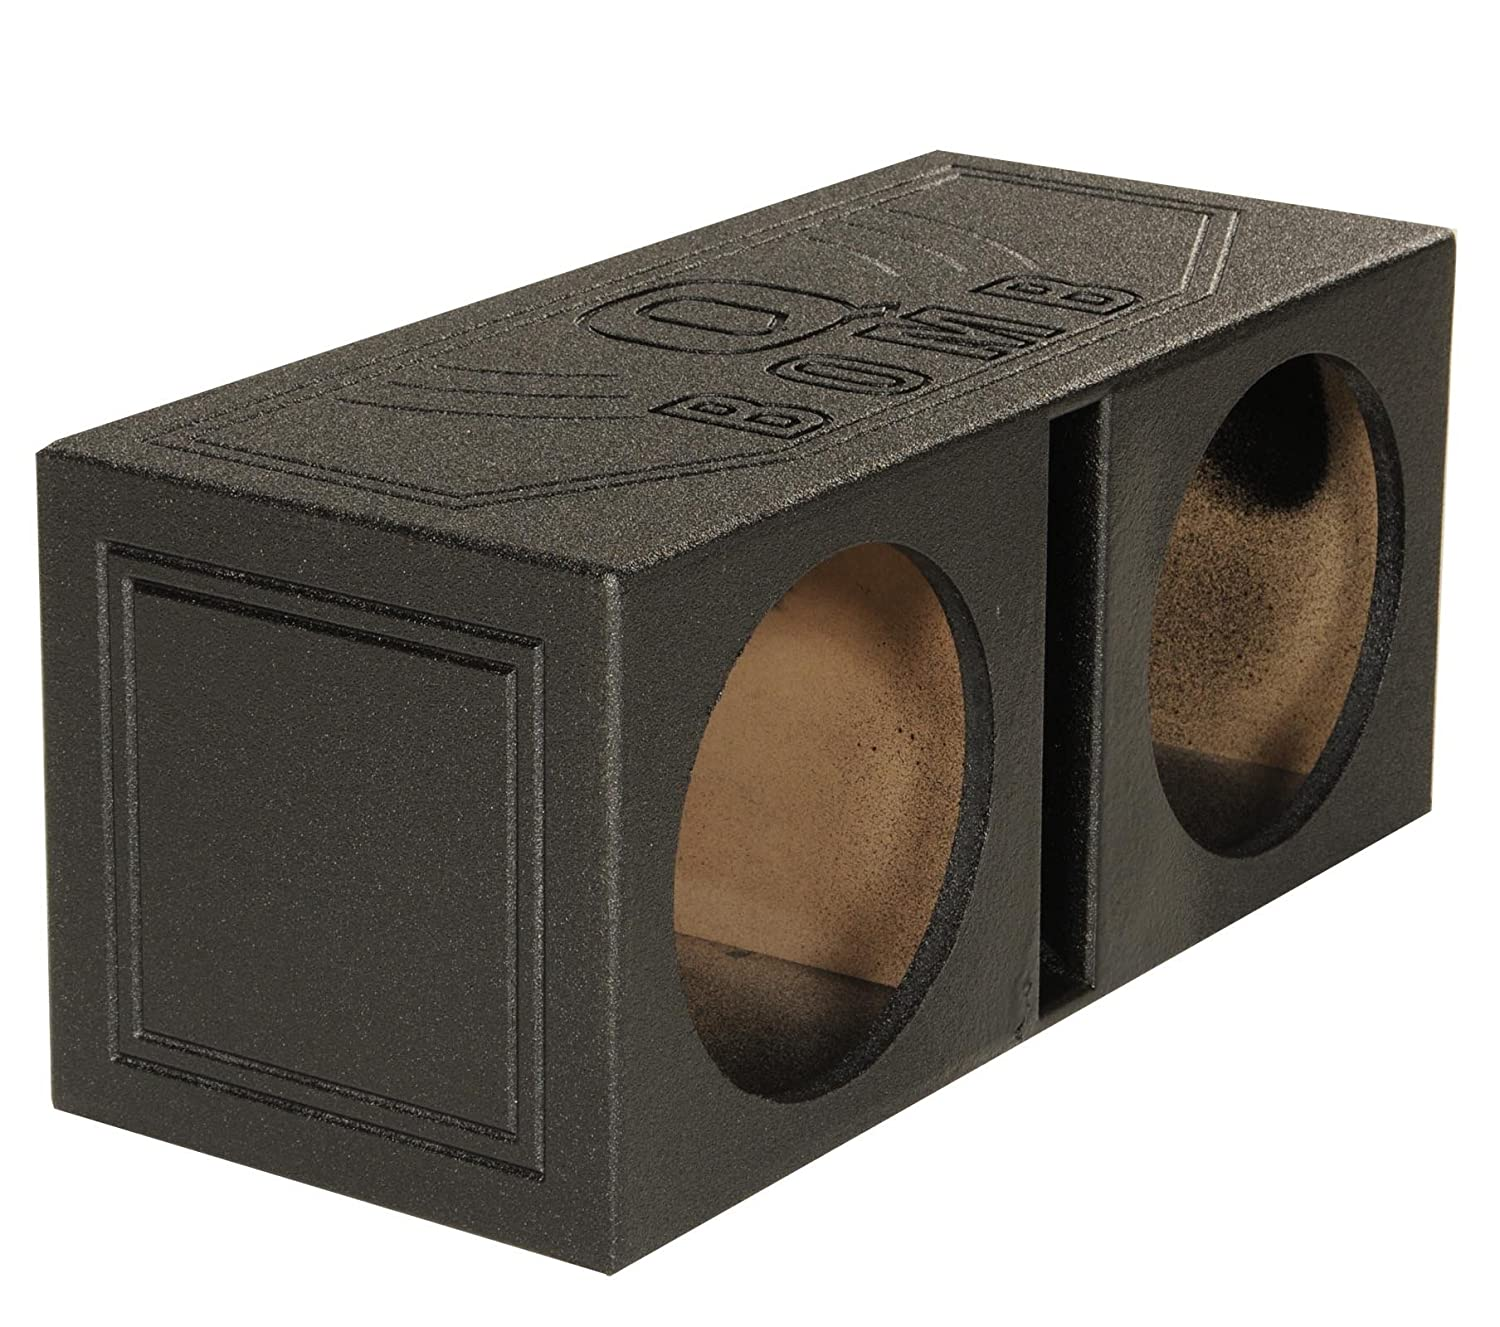 Amazon q power qbomb15v dual 15 inch vented speaker box from amazon q power qbomb15v dual 15 inch vented speaker box from high grade mdf wood with durable bed liner spray car electronics sciox Images